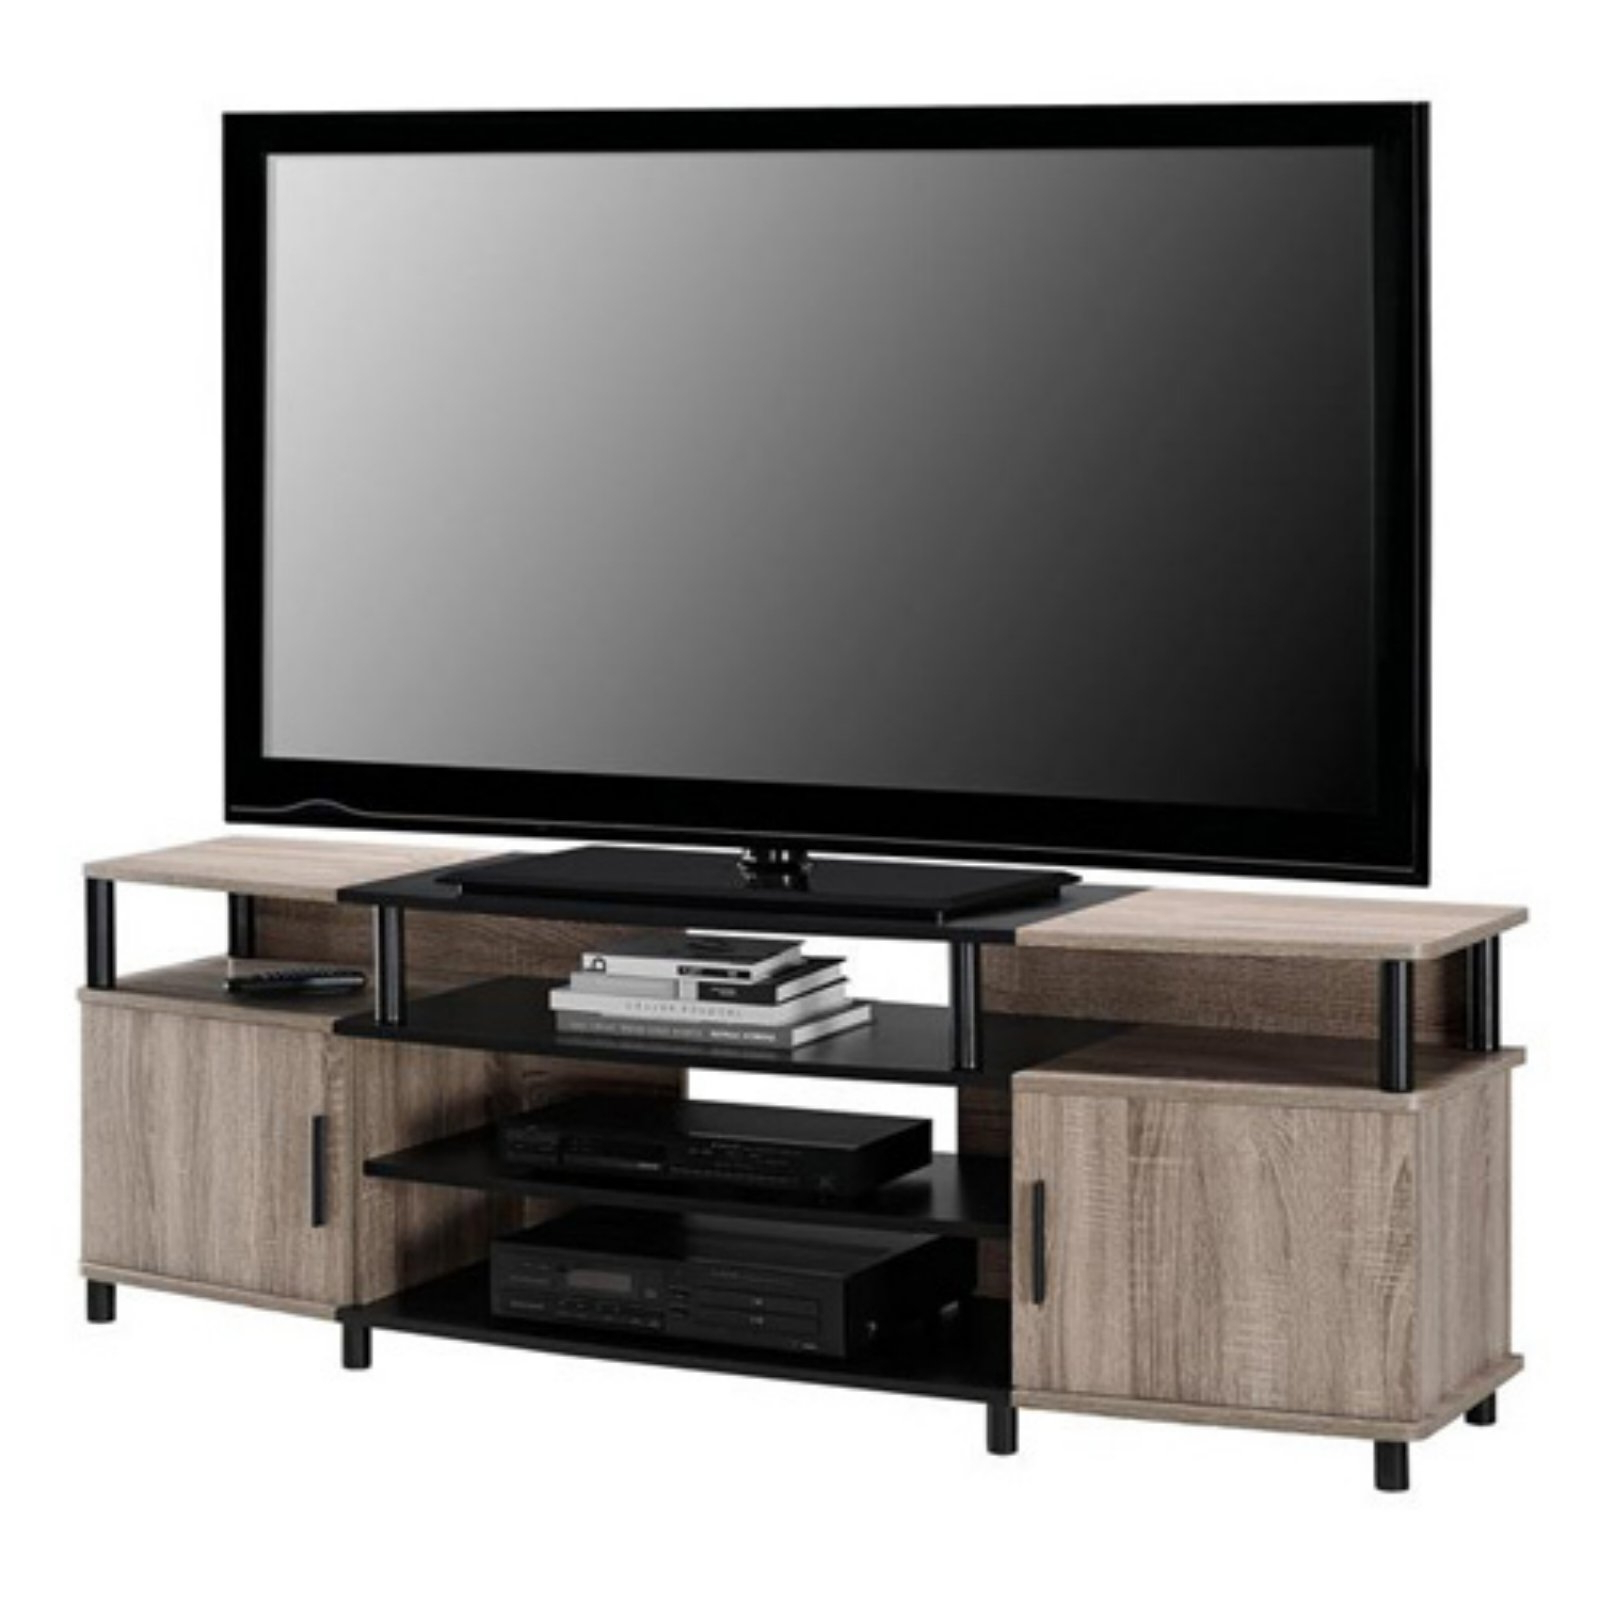 """Ameriwood Home Carson Tv Stand For Tvs Up To 70"""", Multiple With Regard To Mainstays Tv Stands For Tvs With Multiple Colors (View 3 of 20)"""